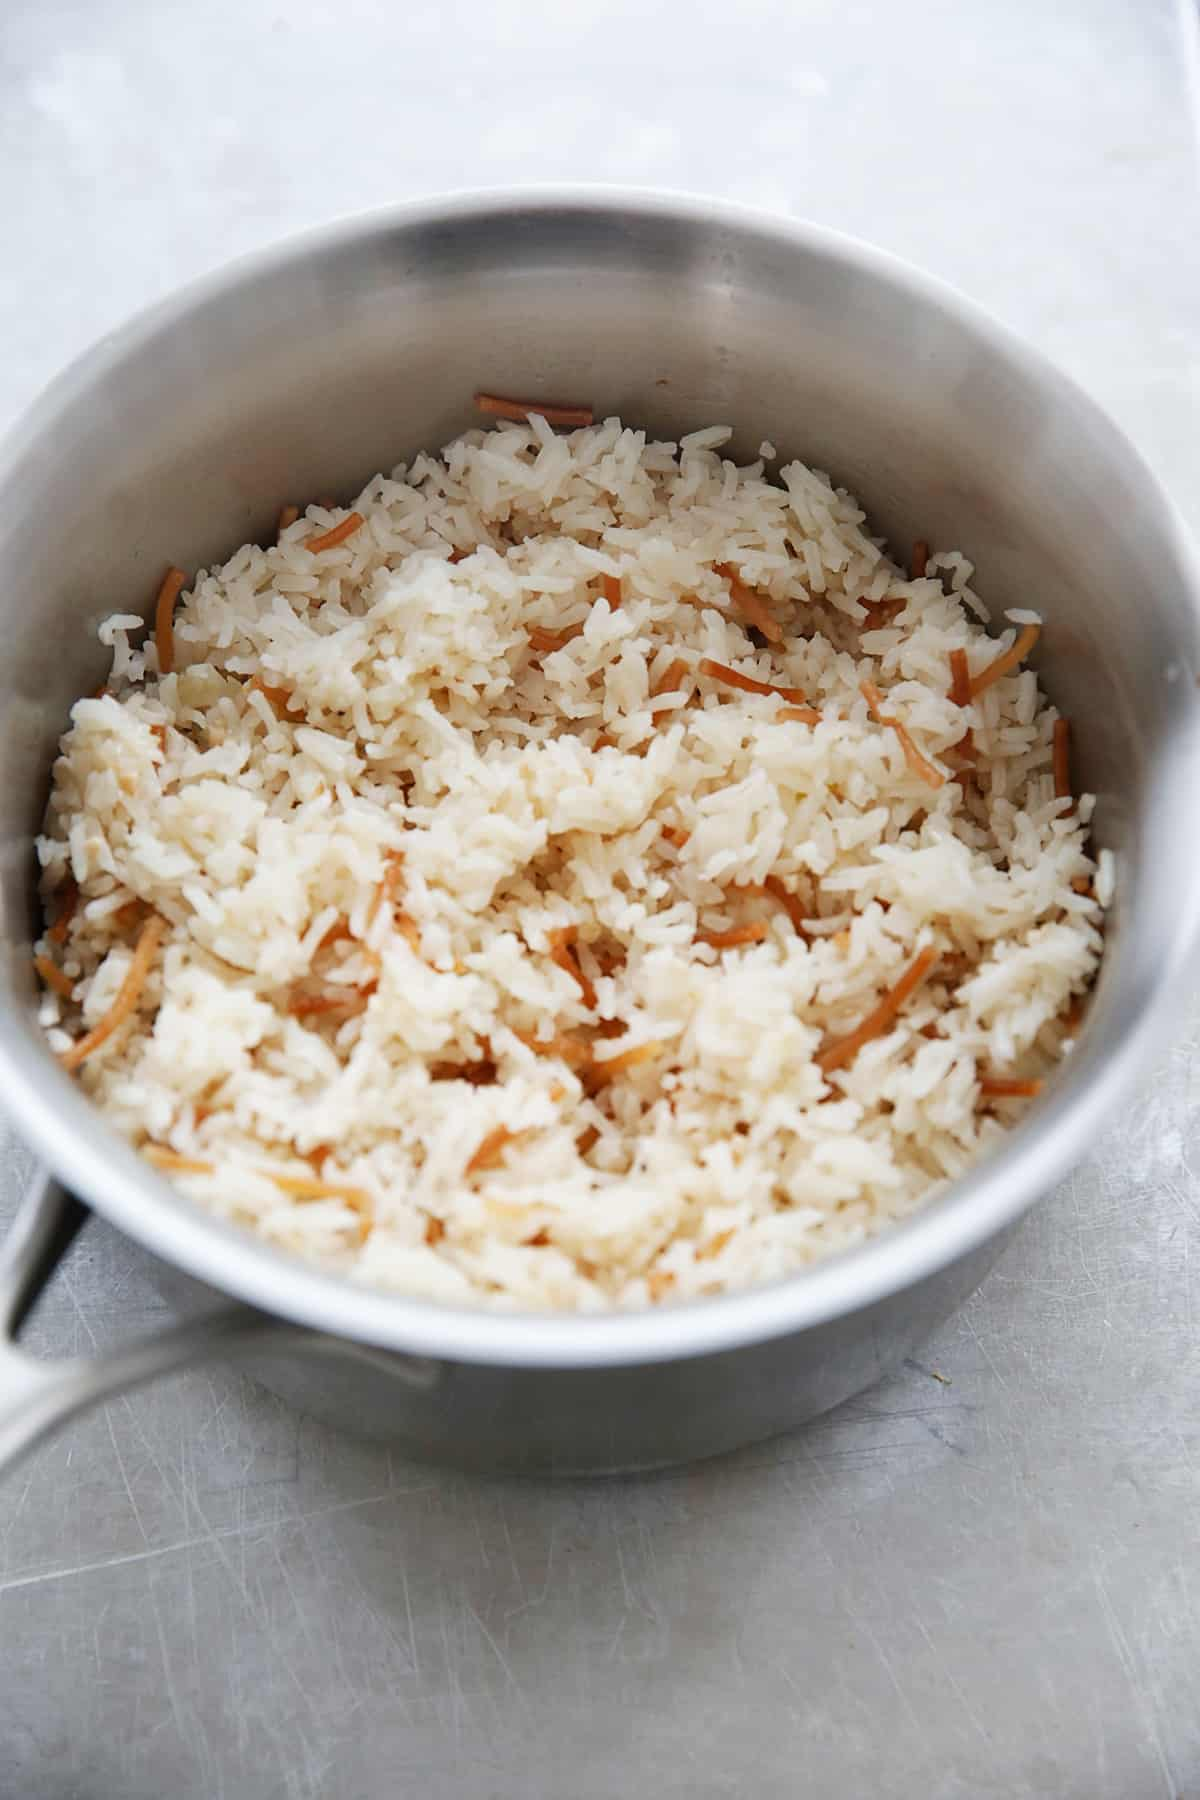 How much salt do you put in 1 cup of rice